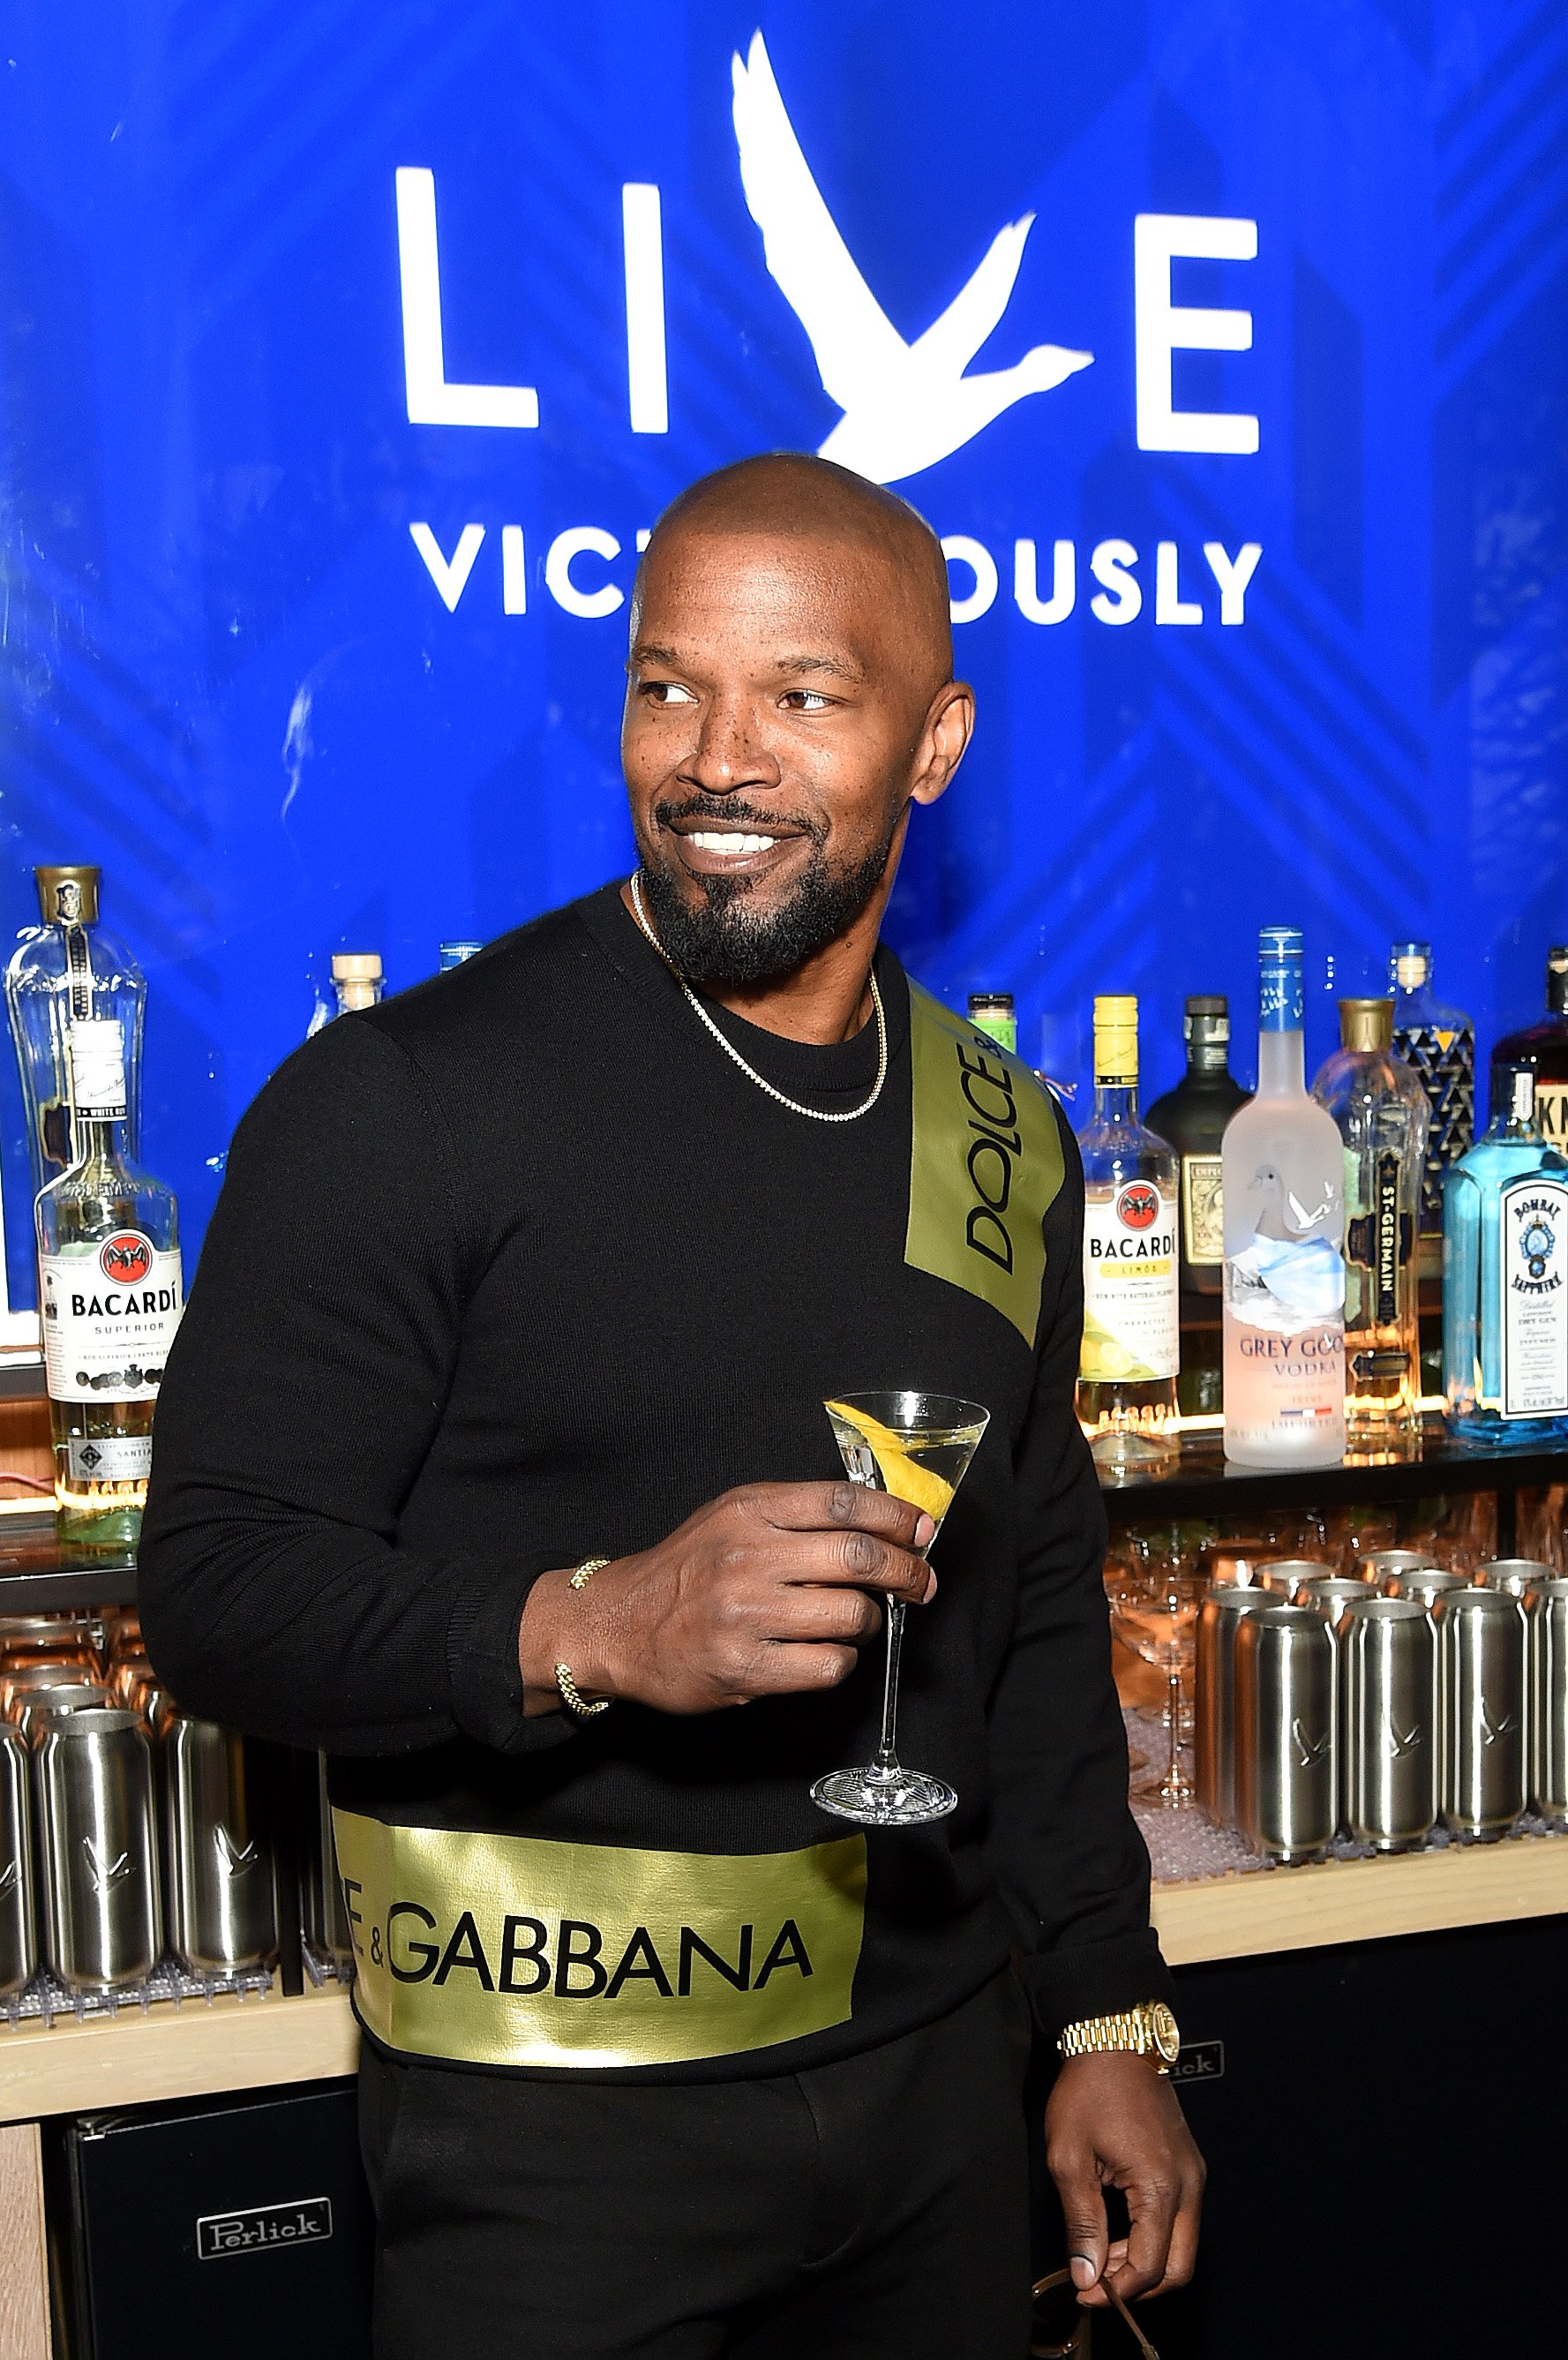 Jamie Foxx at a Grey Goose event in April 2019. | Photo: Getty Images